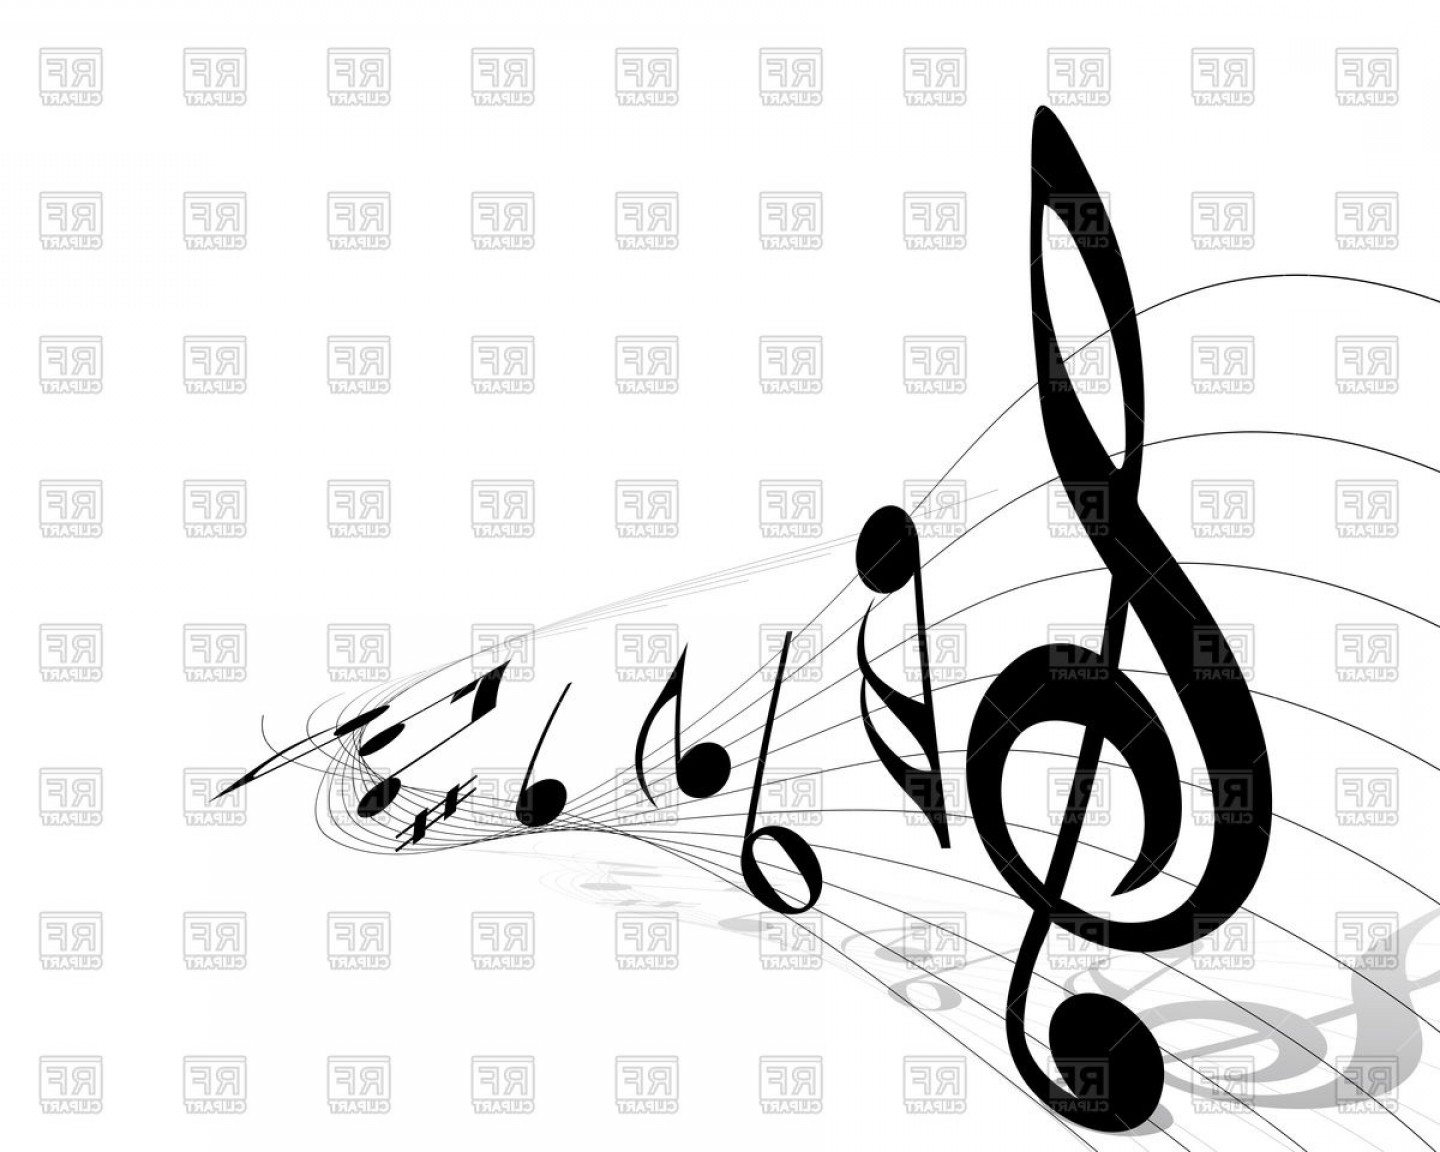 Treble clef clipart vector clipart freeuse stock Treble Clef With Musical Notes Vector Clipart | SOIDERGI clipart freeuse stock